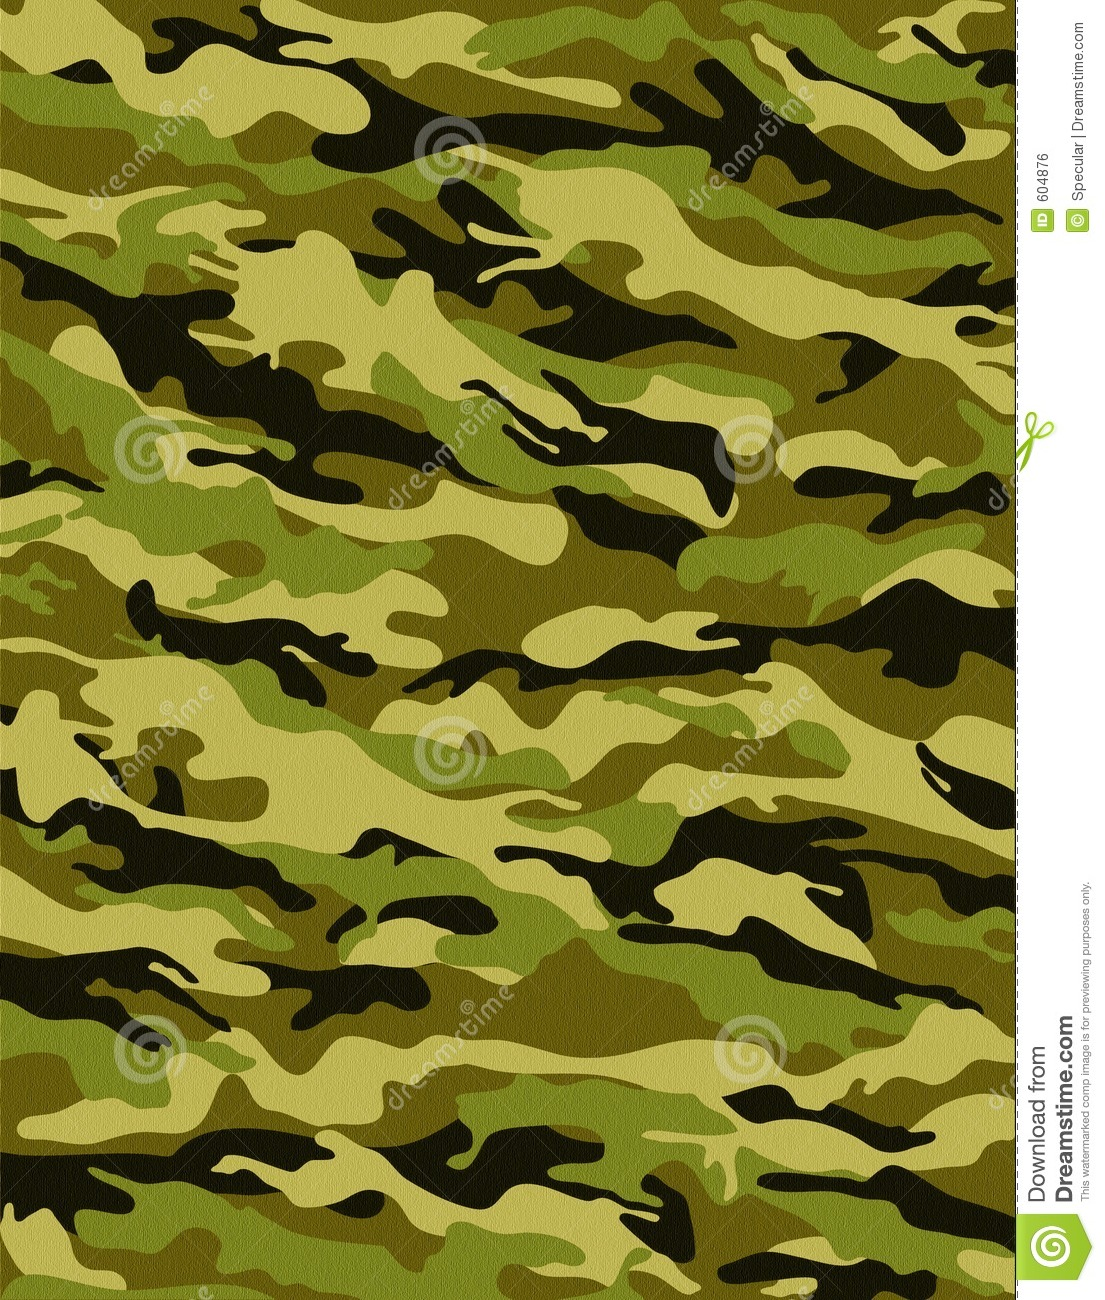 Traditionele camouflage